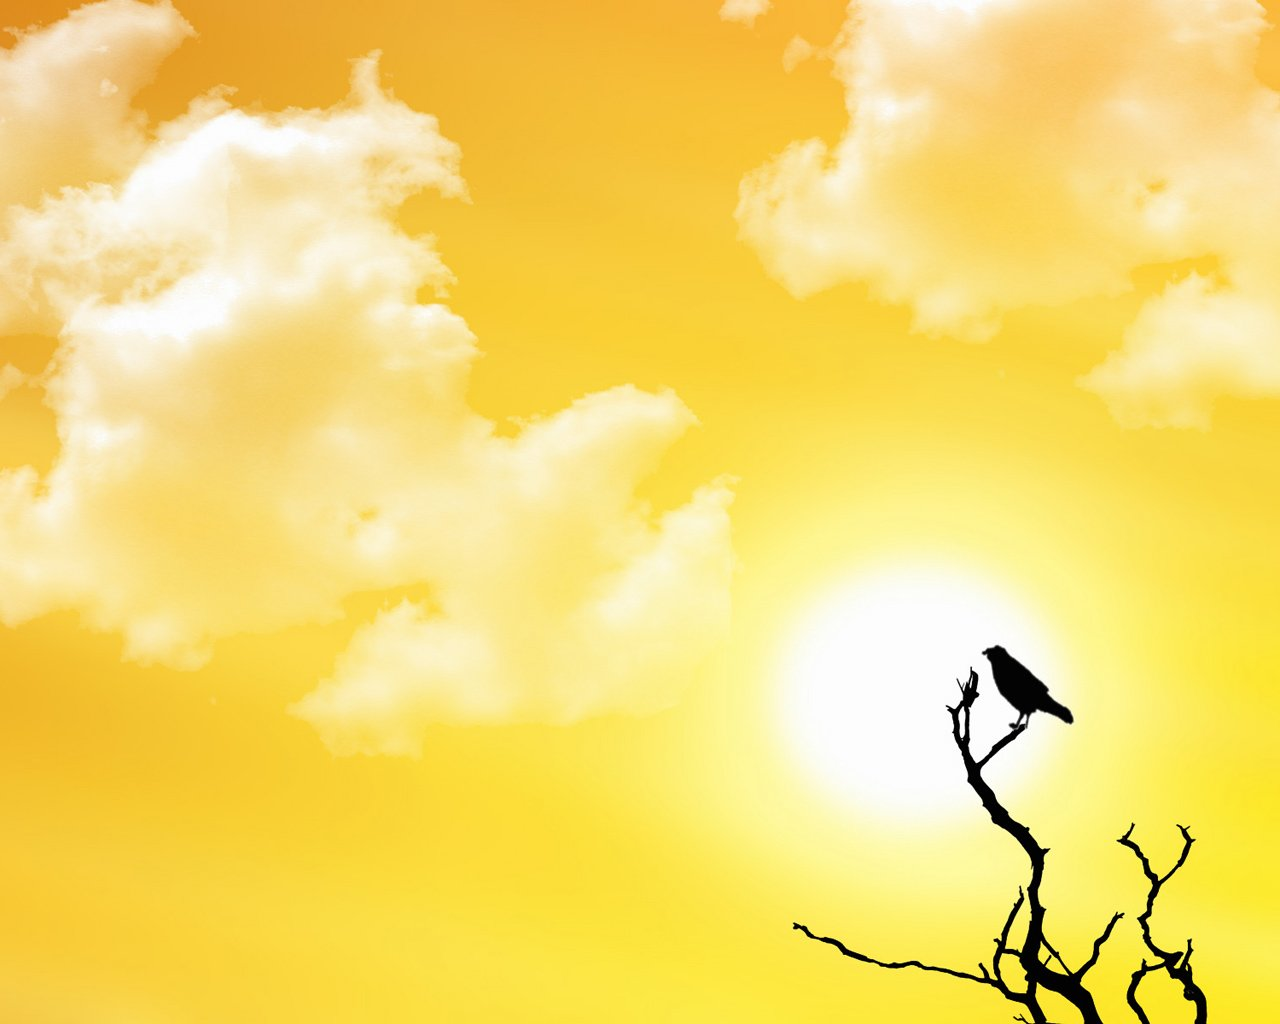 Sun and Bird - Abstract - wallpapers